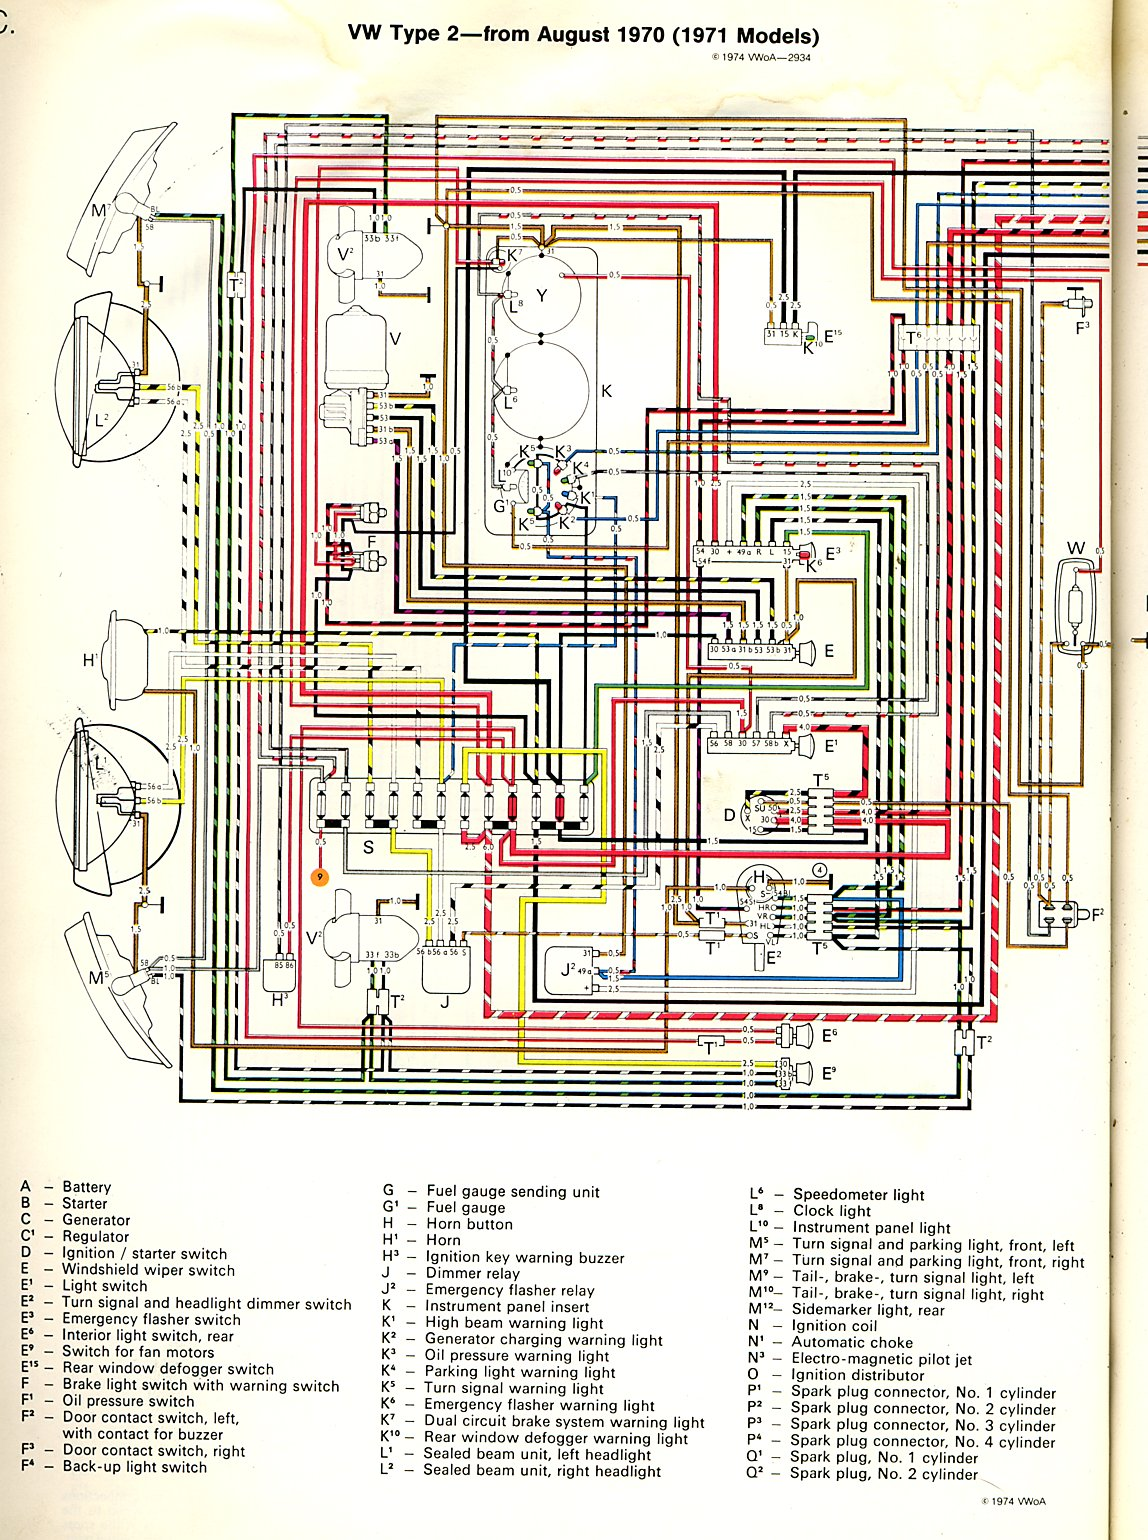 baybus_71a thesamba com type 2 wiring diagrams vw bus wiring diagram at edmiracle.co